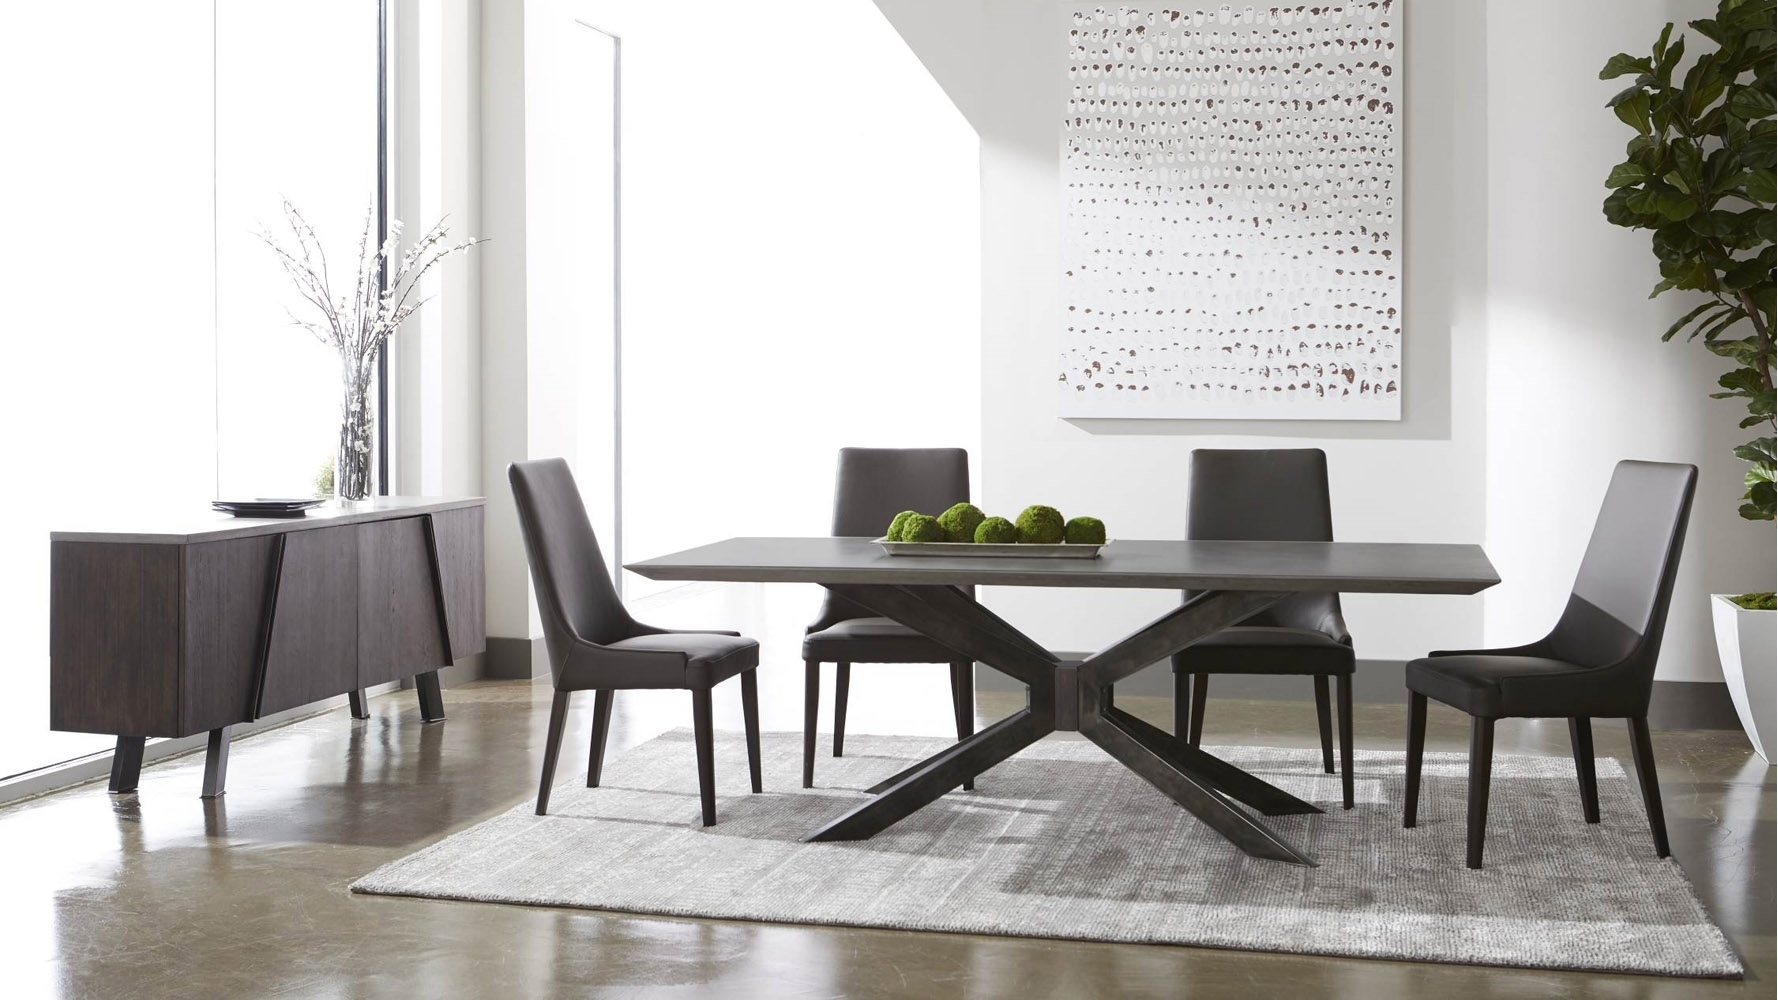 Beton 87 Inch Dining Table | Zuri Furniture Throughout Most Up To Date 87 Inch Dining Tables (View 15 of 20)